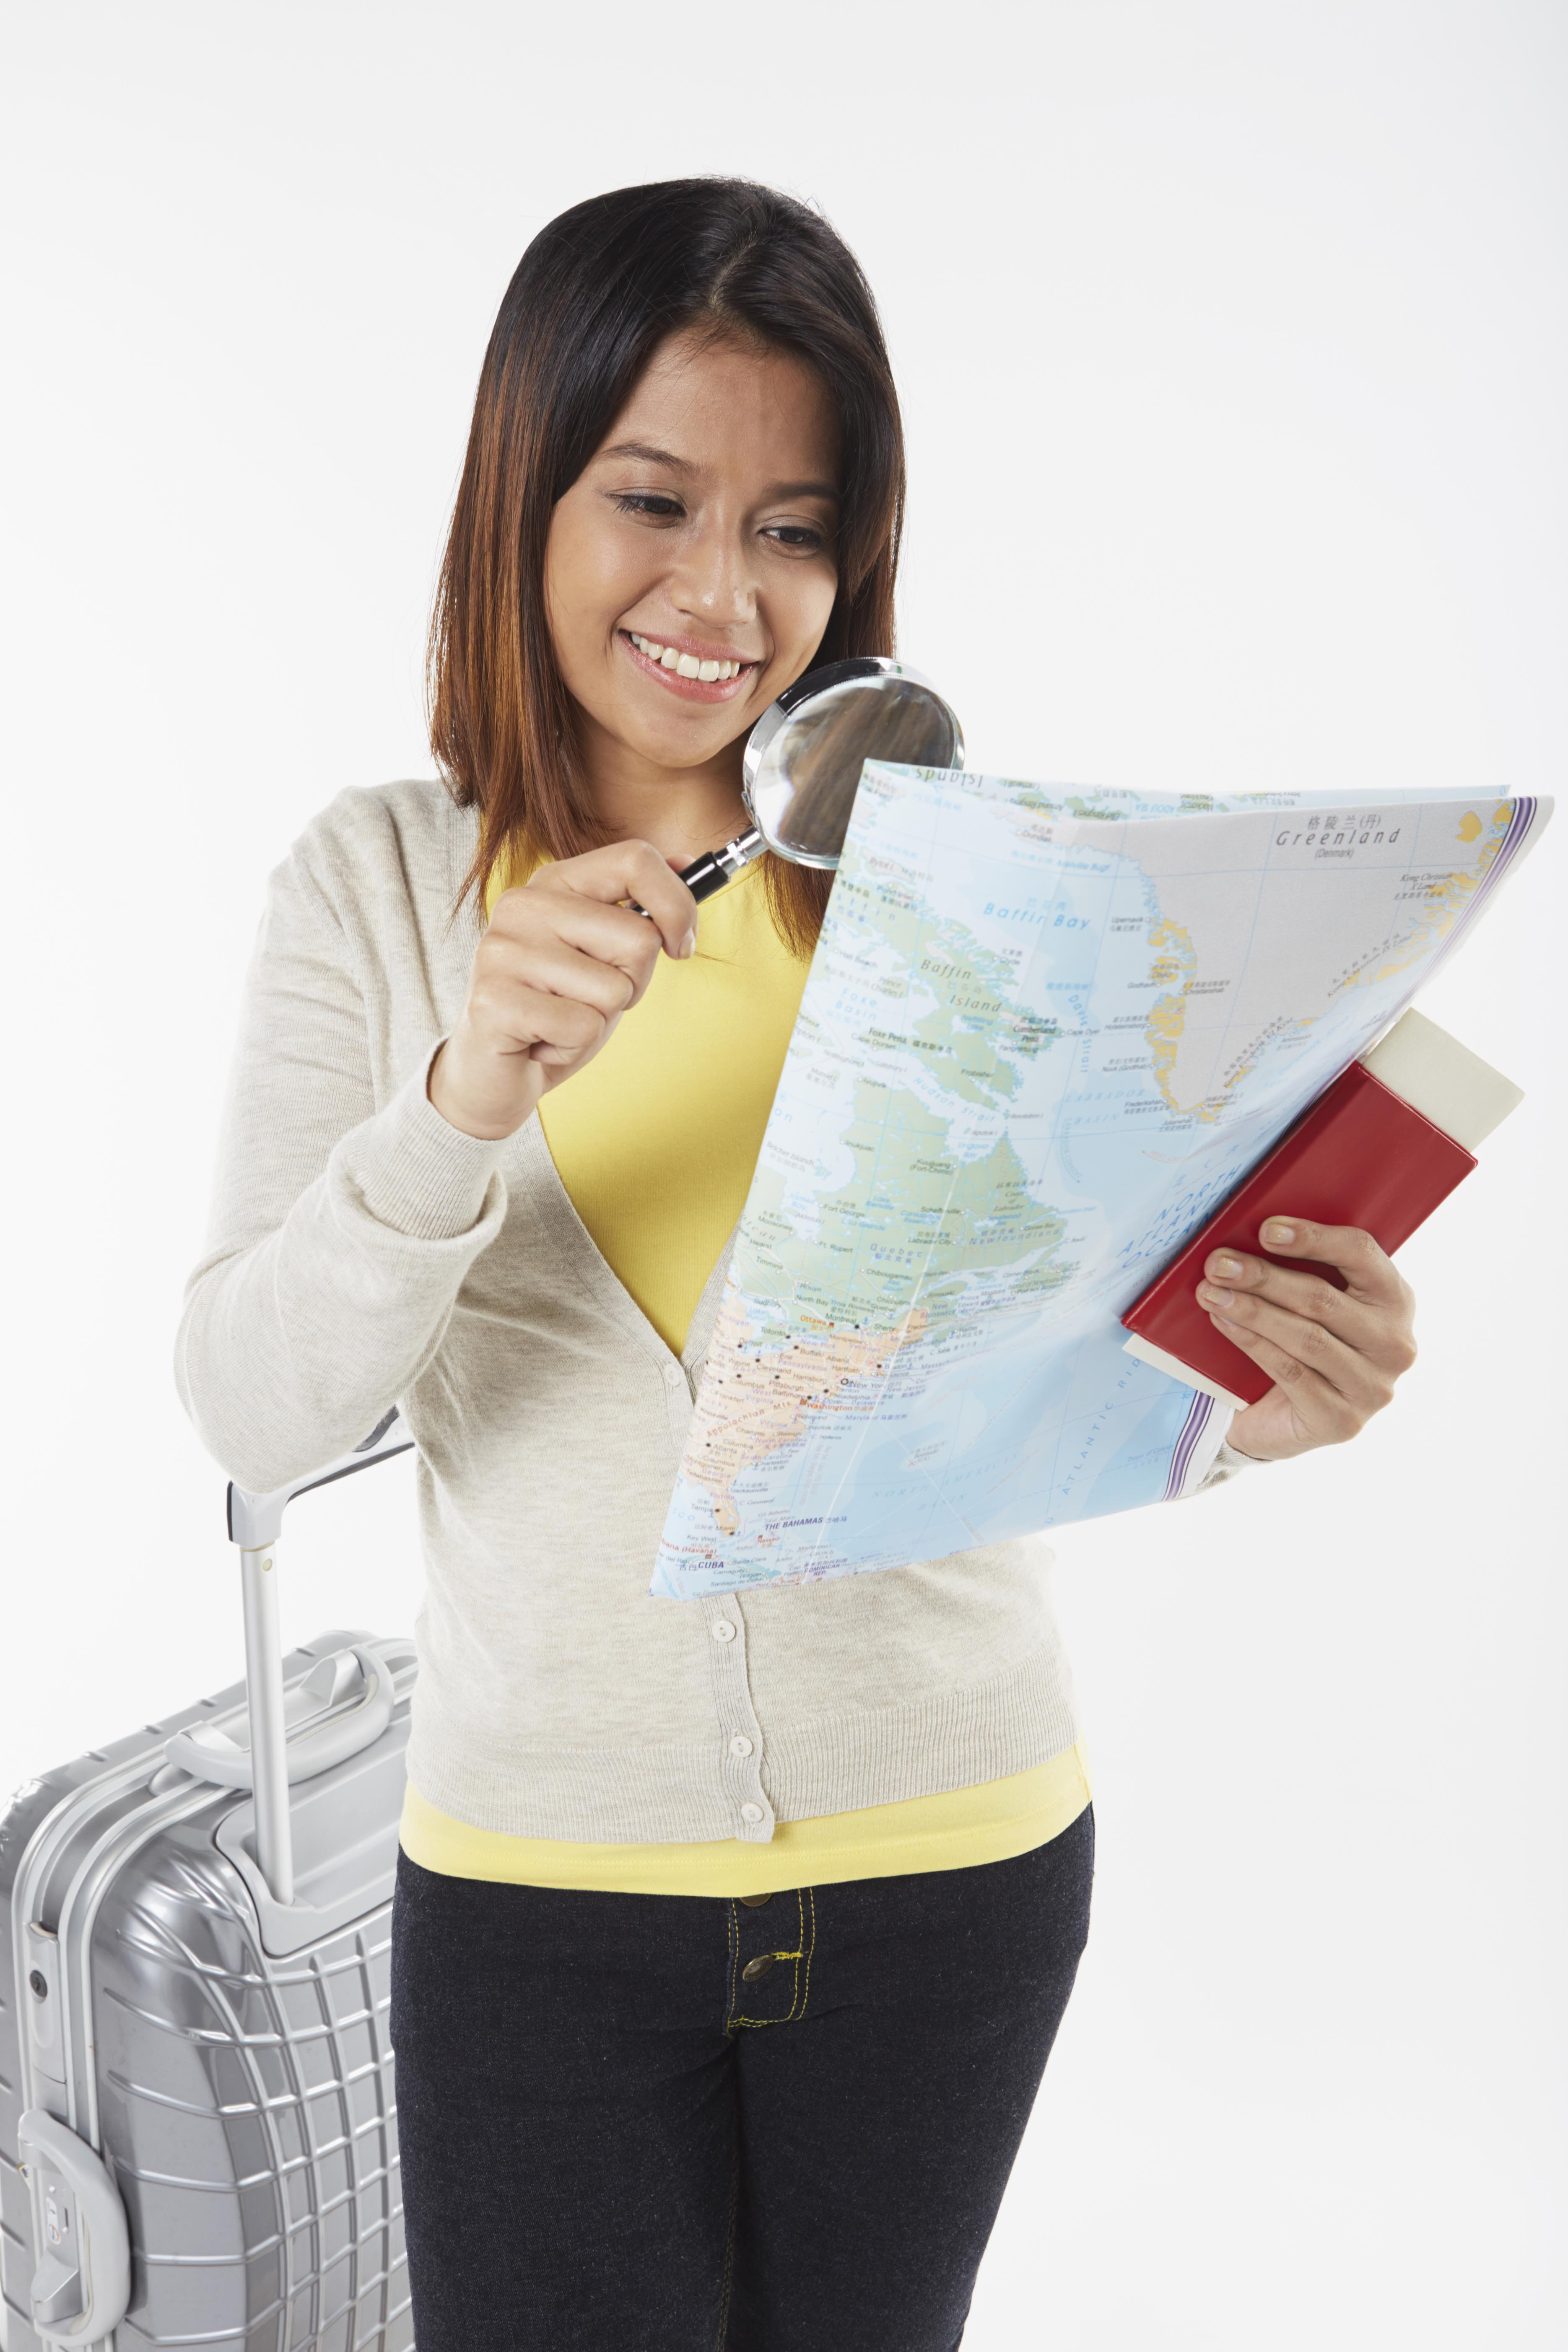 Woman-looking-at map-with-magnifying-glass